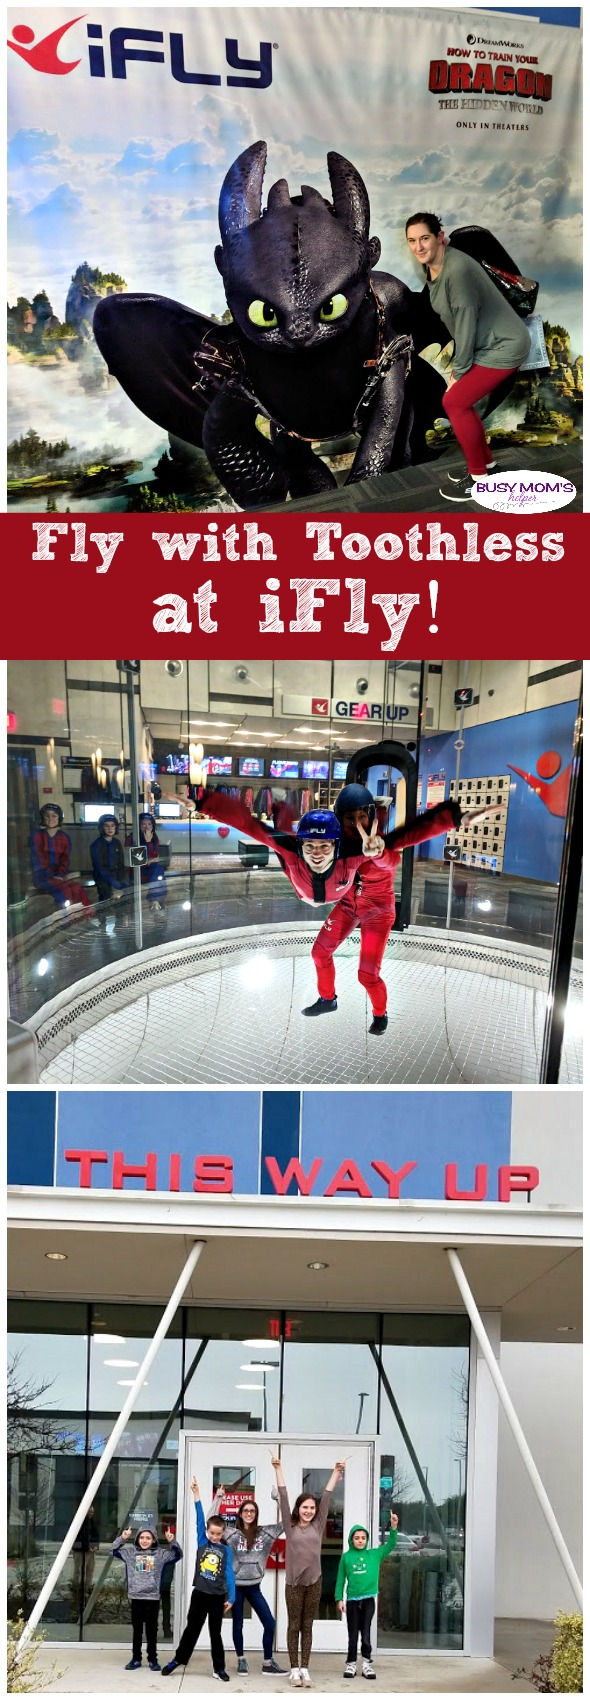 Fly with Toothless at iFly #ad #ifly #indoorskydiving #howtotrainyourdragon You get to race with your favorite dragon while an iFly instructor guides you on your VR adventure - truly an unforgettable experience for the whole family!